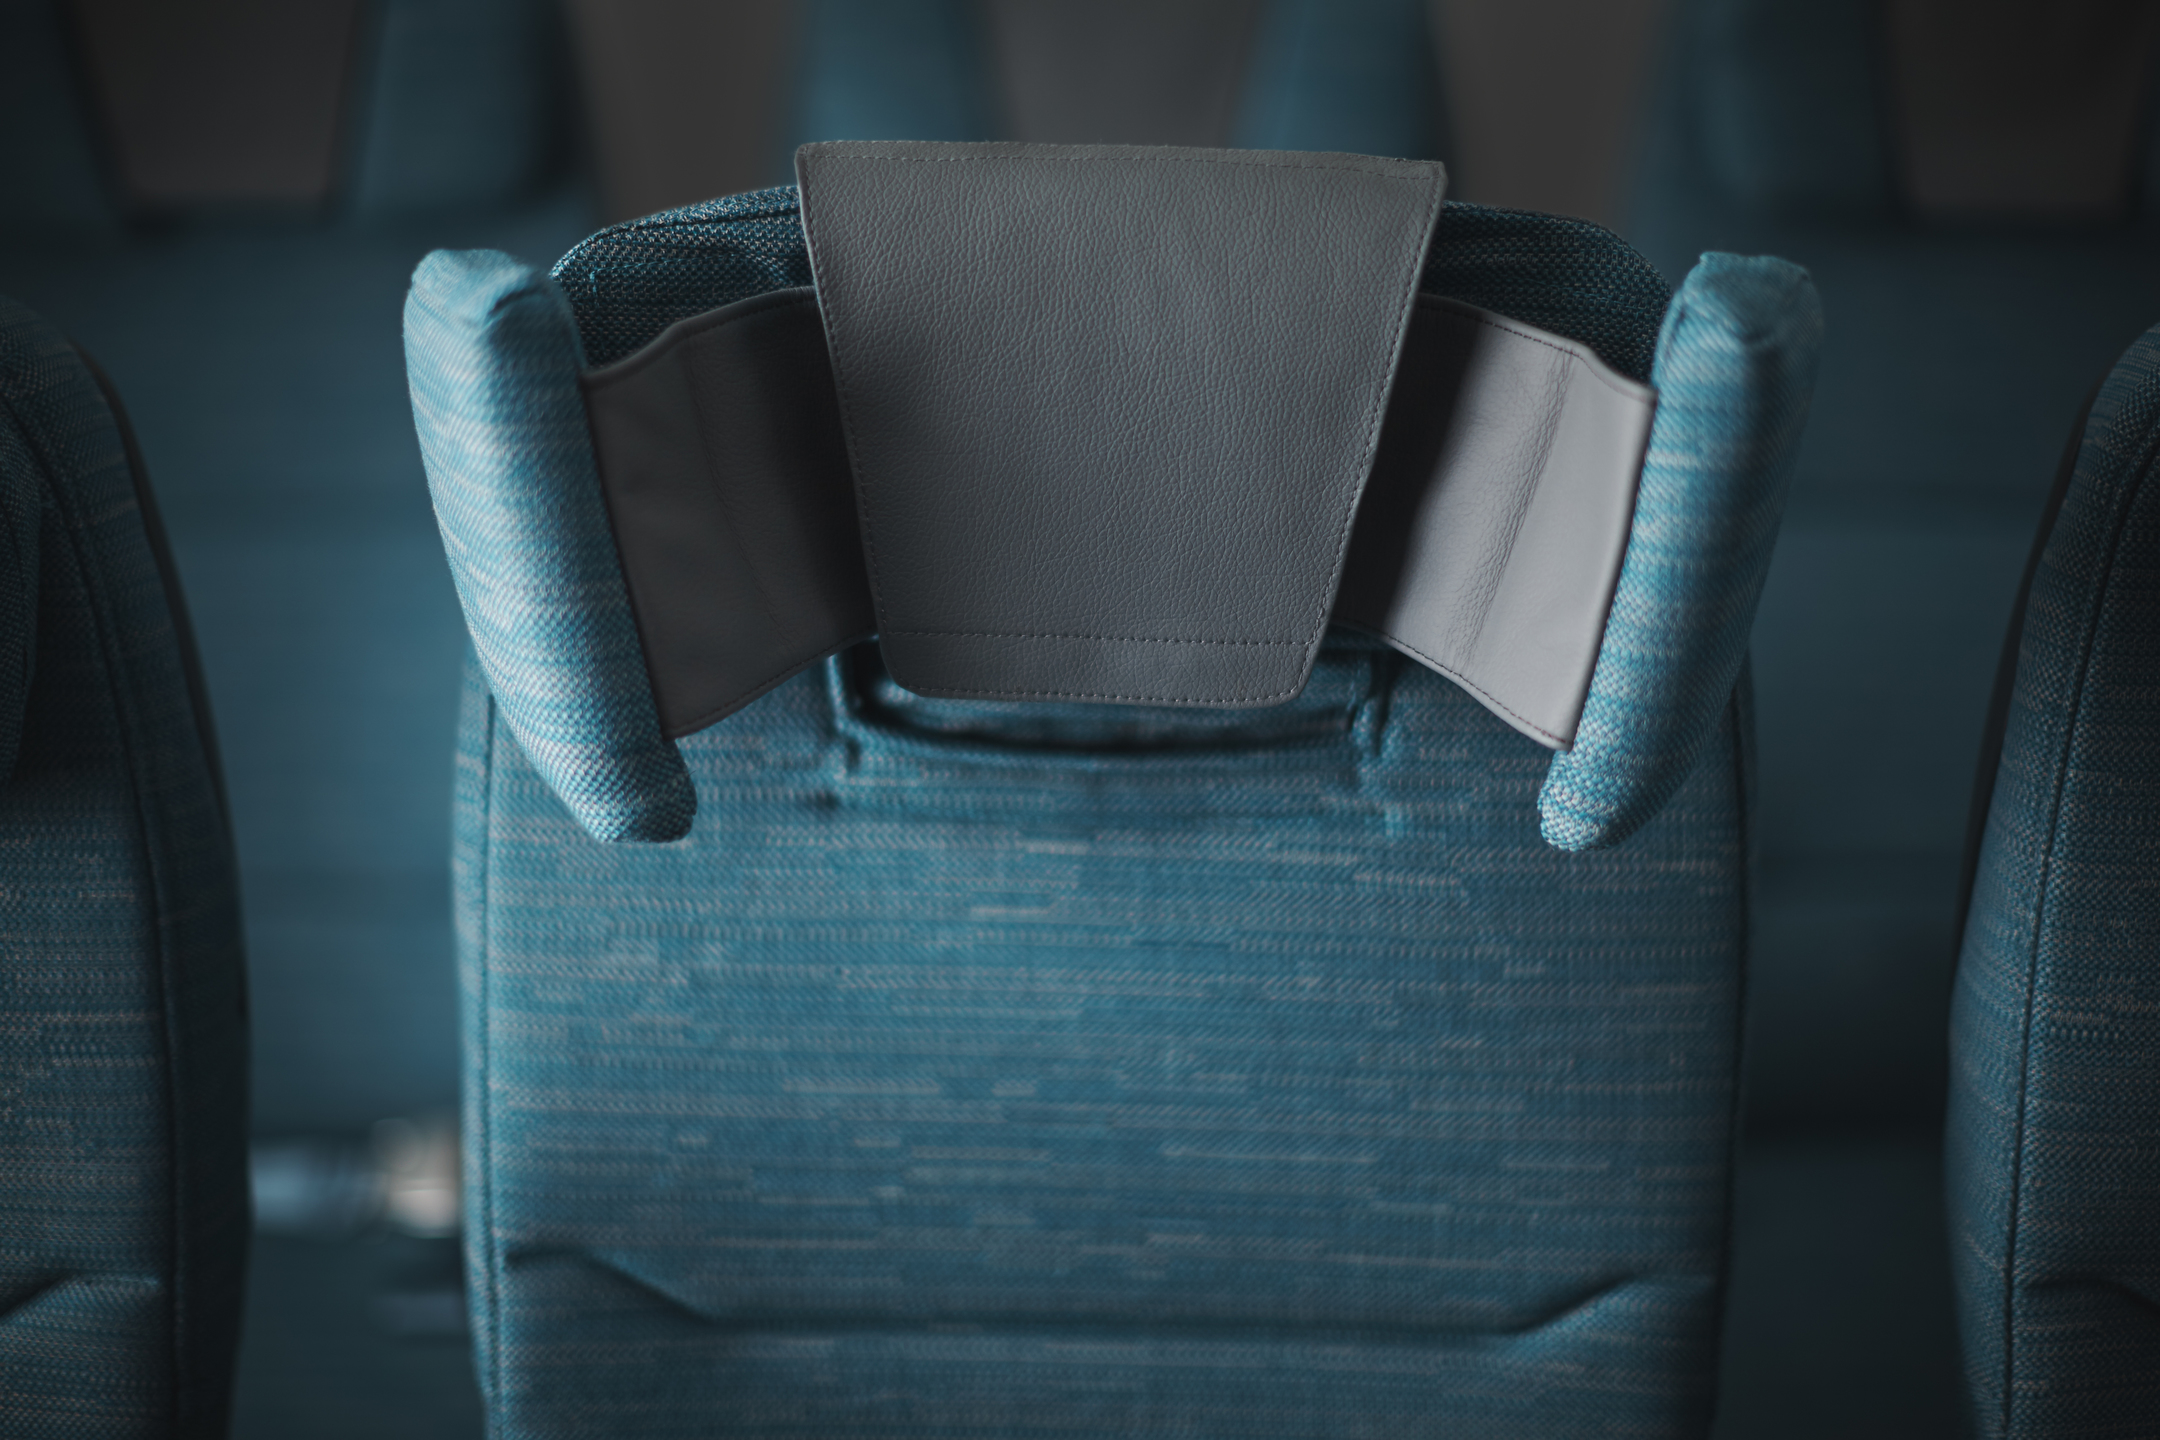 Headrests in Cathay Pacific A350 economy classes.